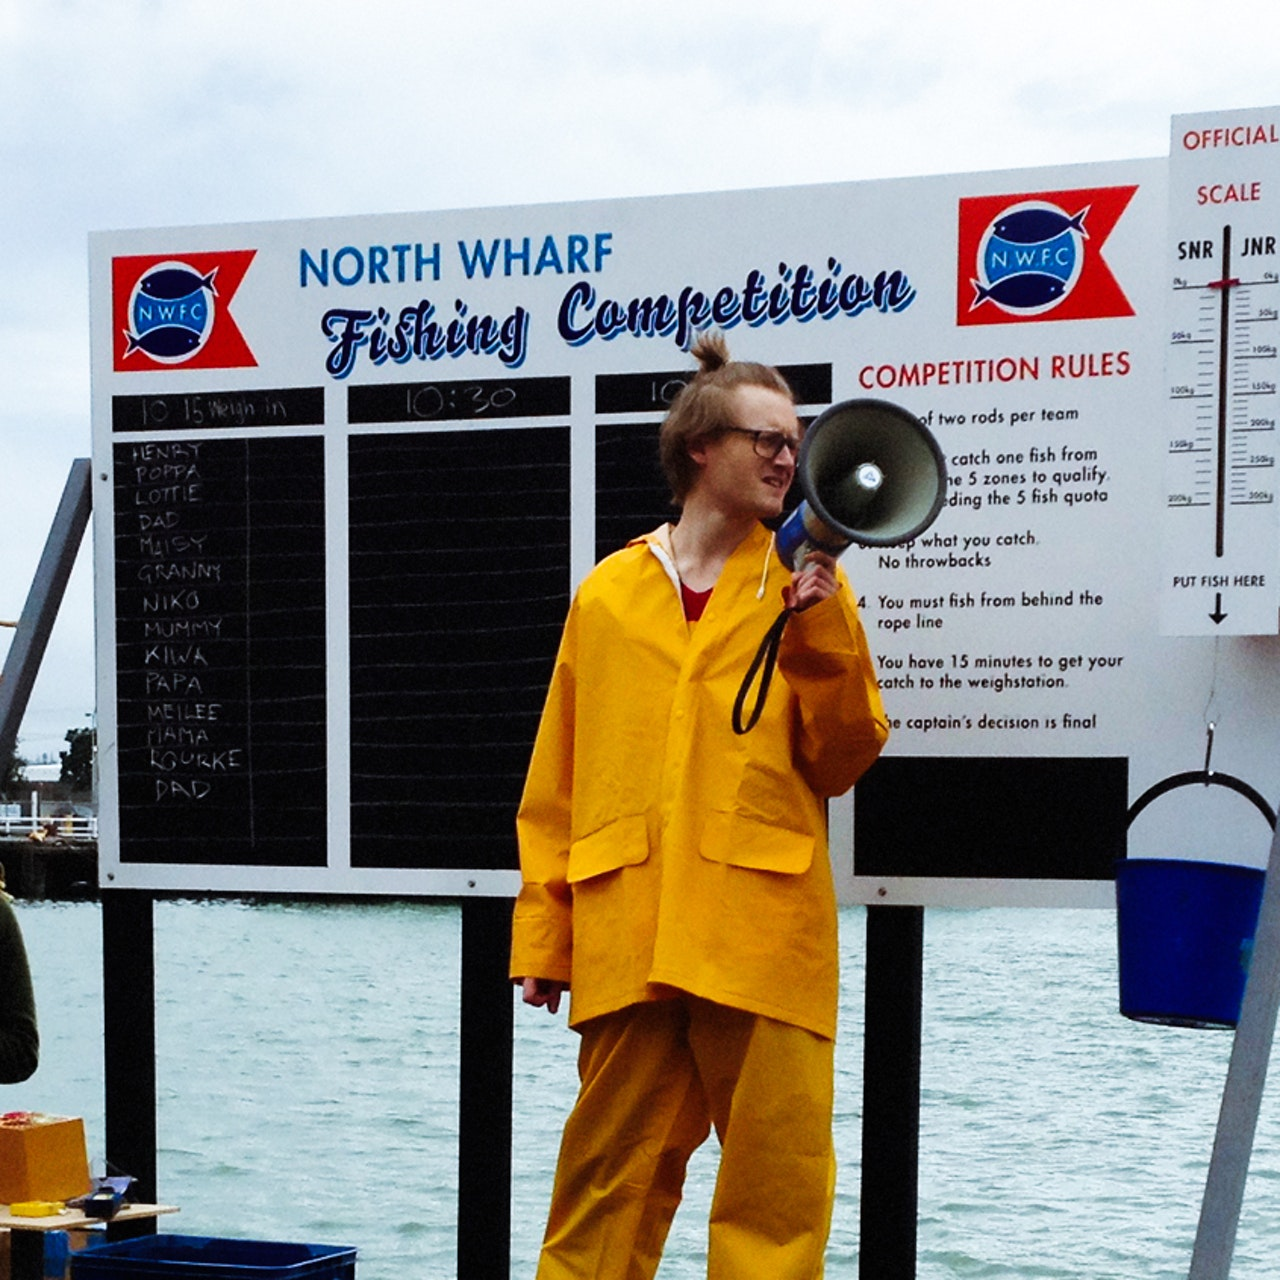 NORTH WHARF FISHING COMPETITION